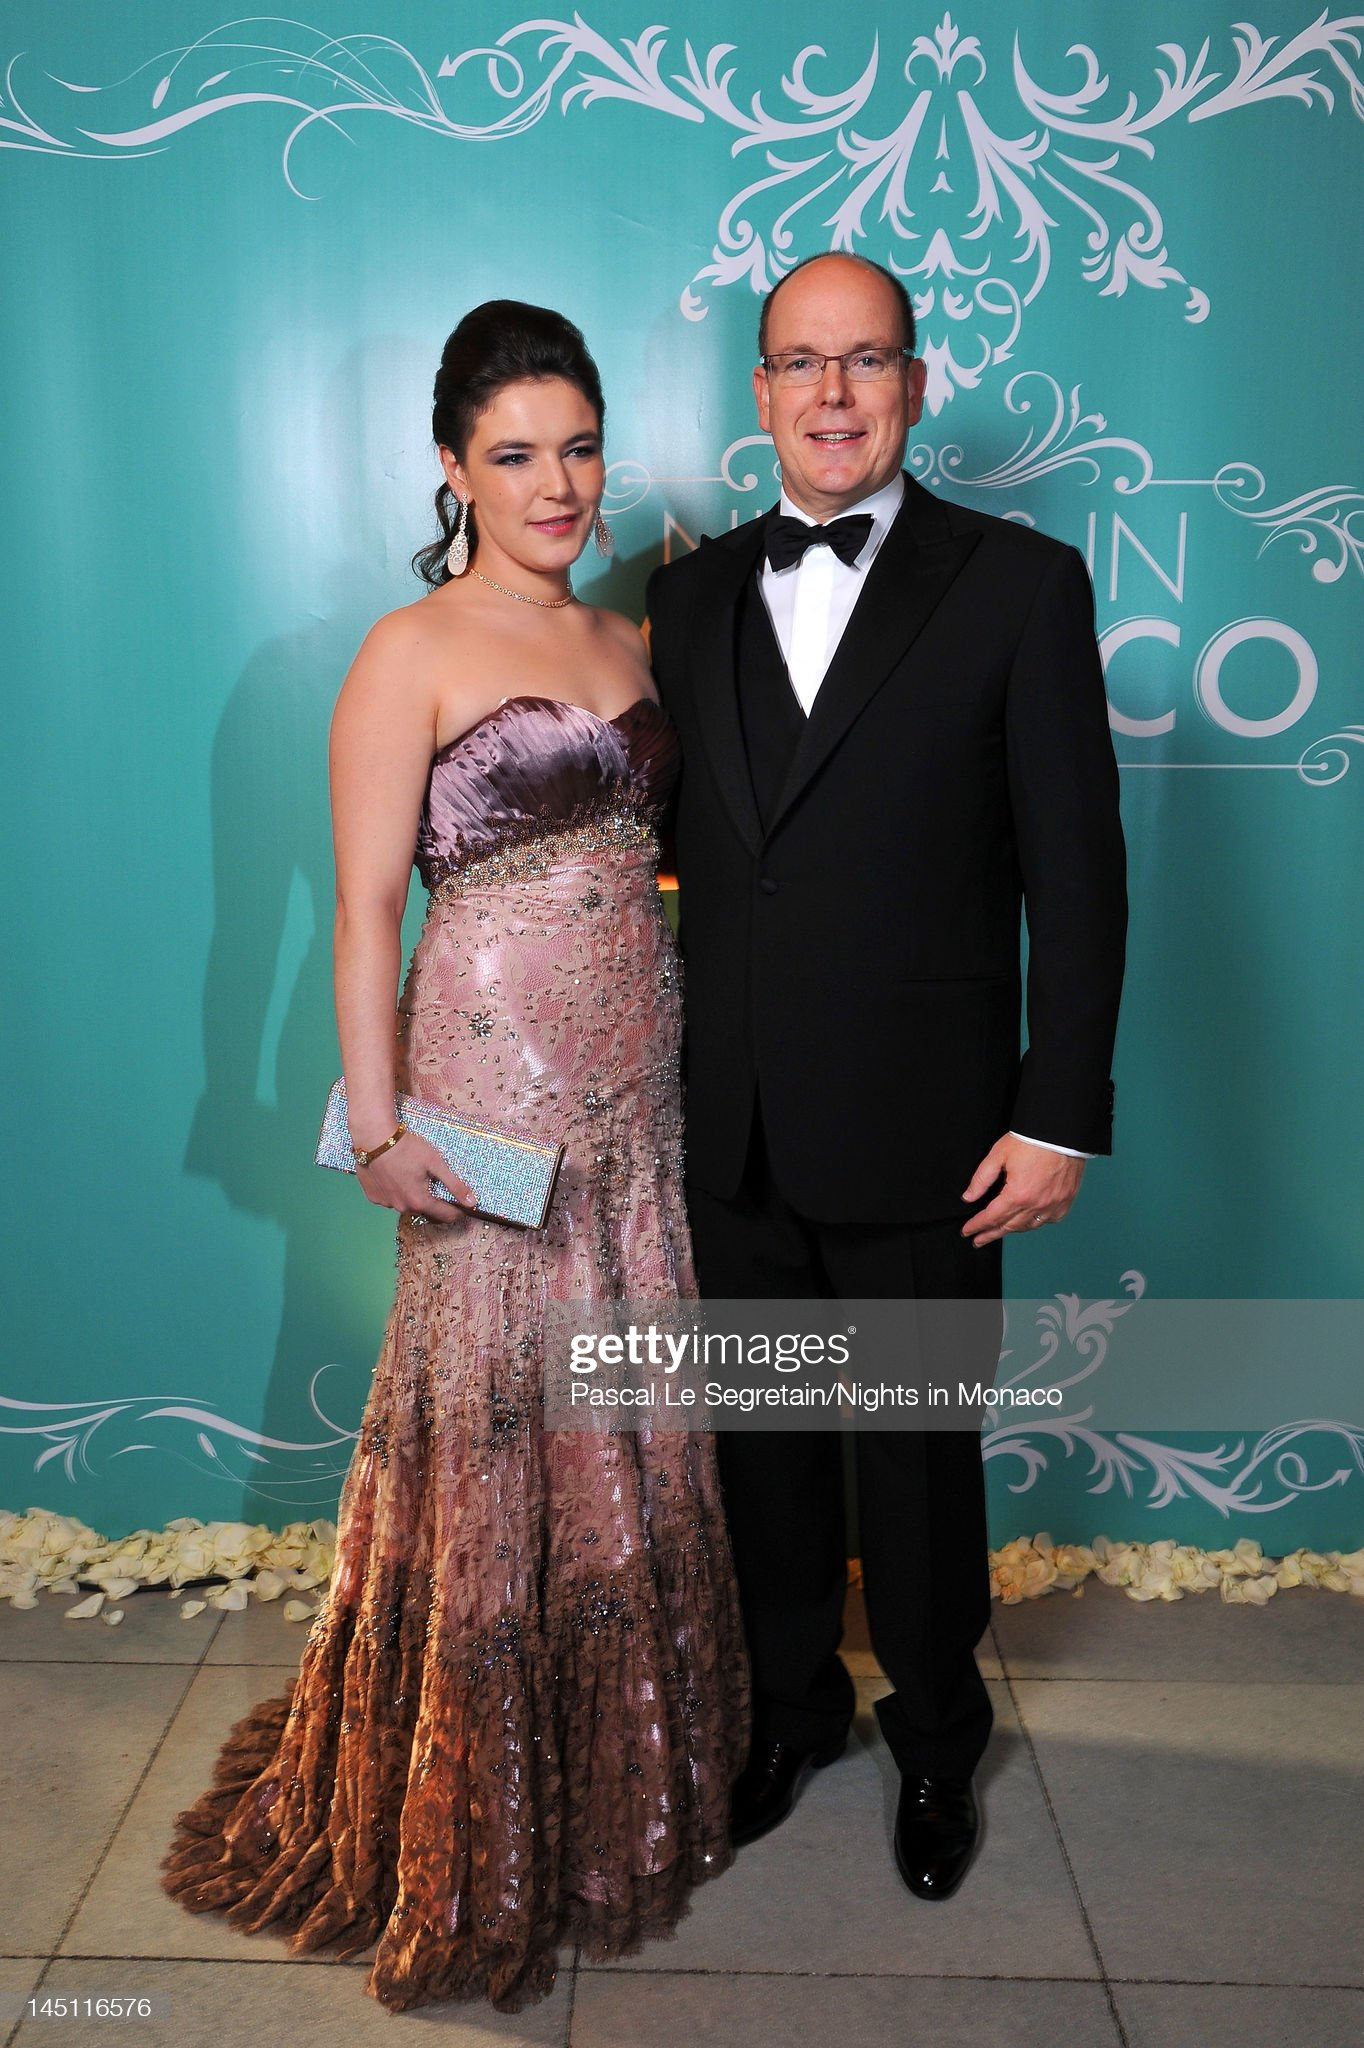 melanie-antoinette-de-massy-and-prince-albert-ii-of-monaco-attend-the-picture-id145116576